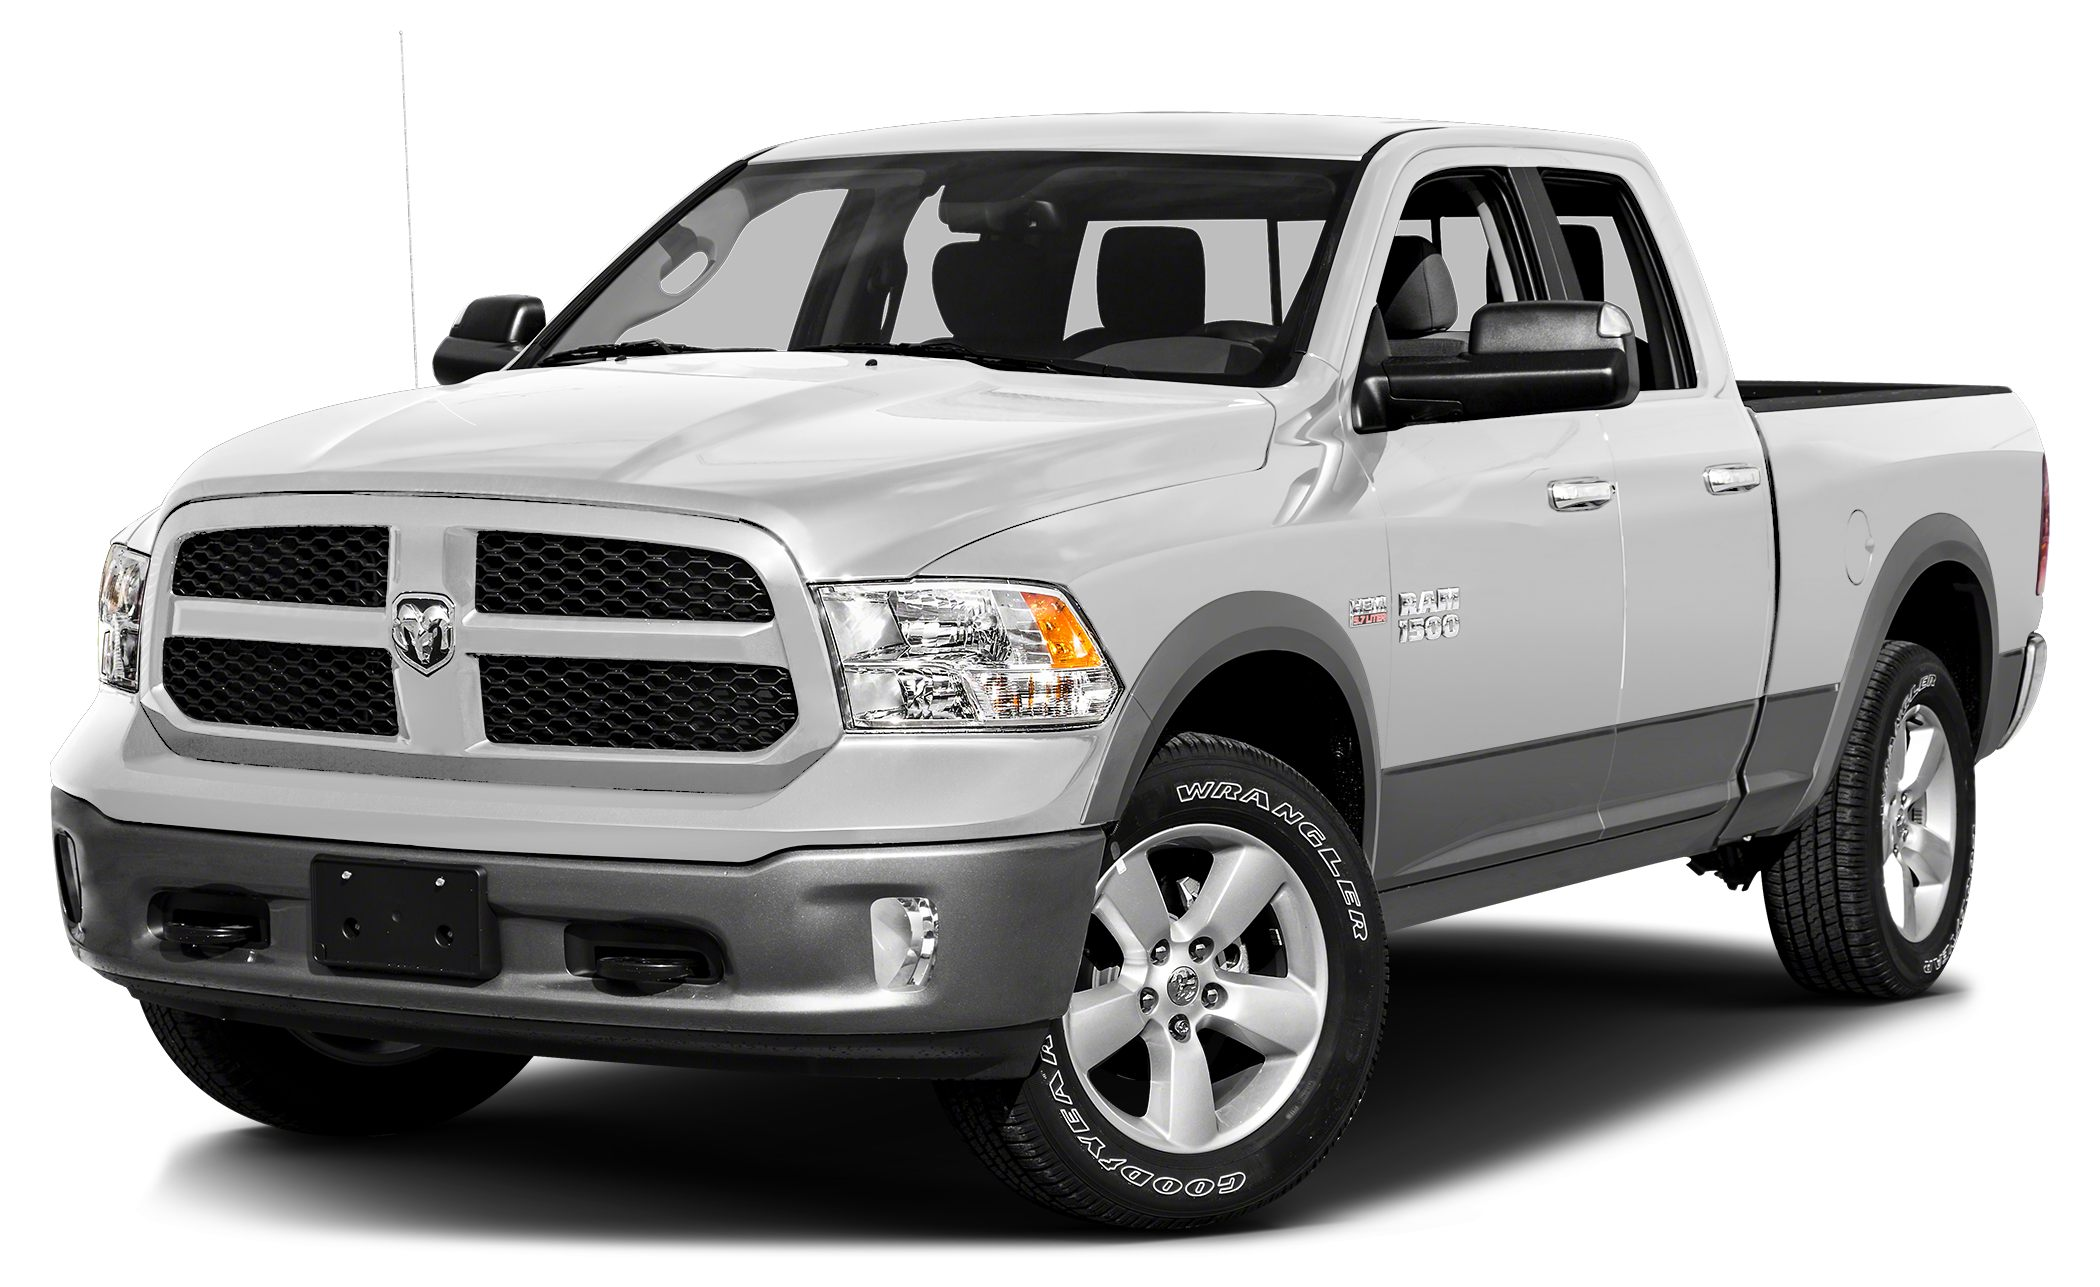 2014 RAM 1500 SLT Big Horn trim PRICE DROP FROM 26700 PRICED TO MOVE 2700 below Kelley Blue